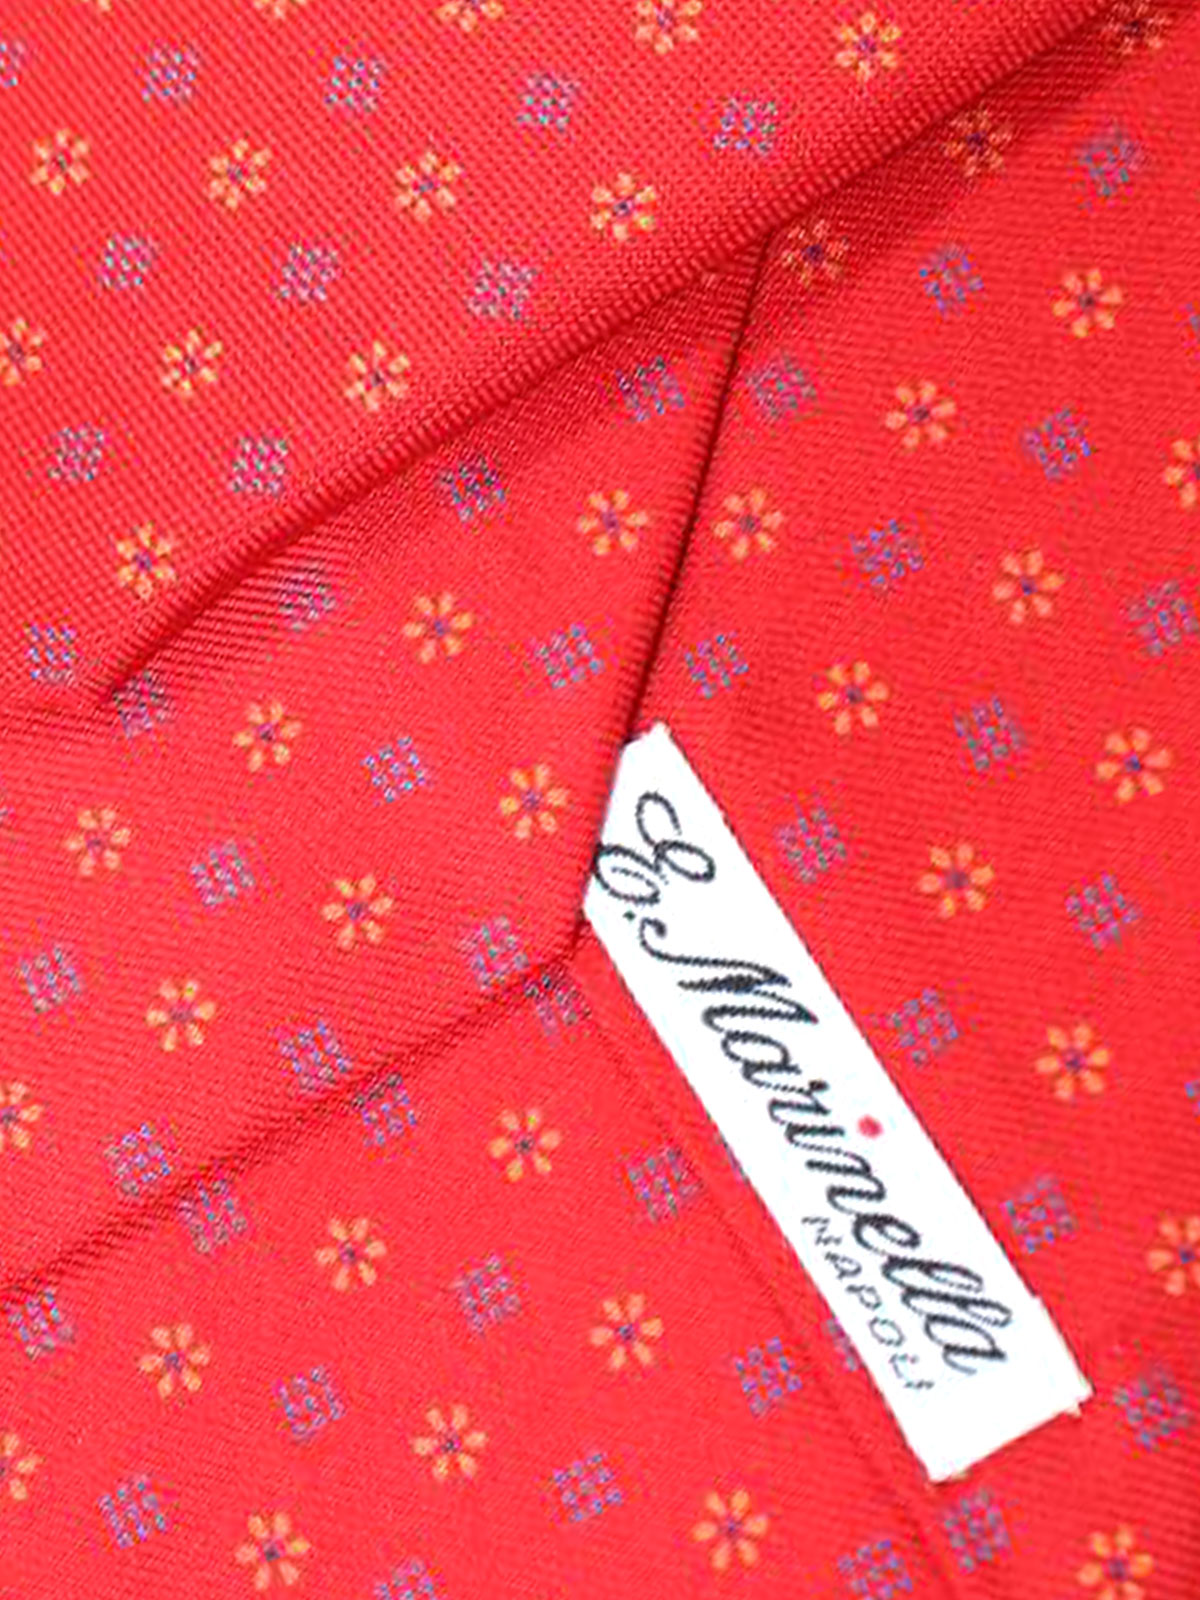 E. Marinella Tie Red Floral Design - Wide Necktie